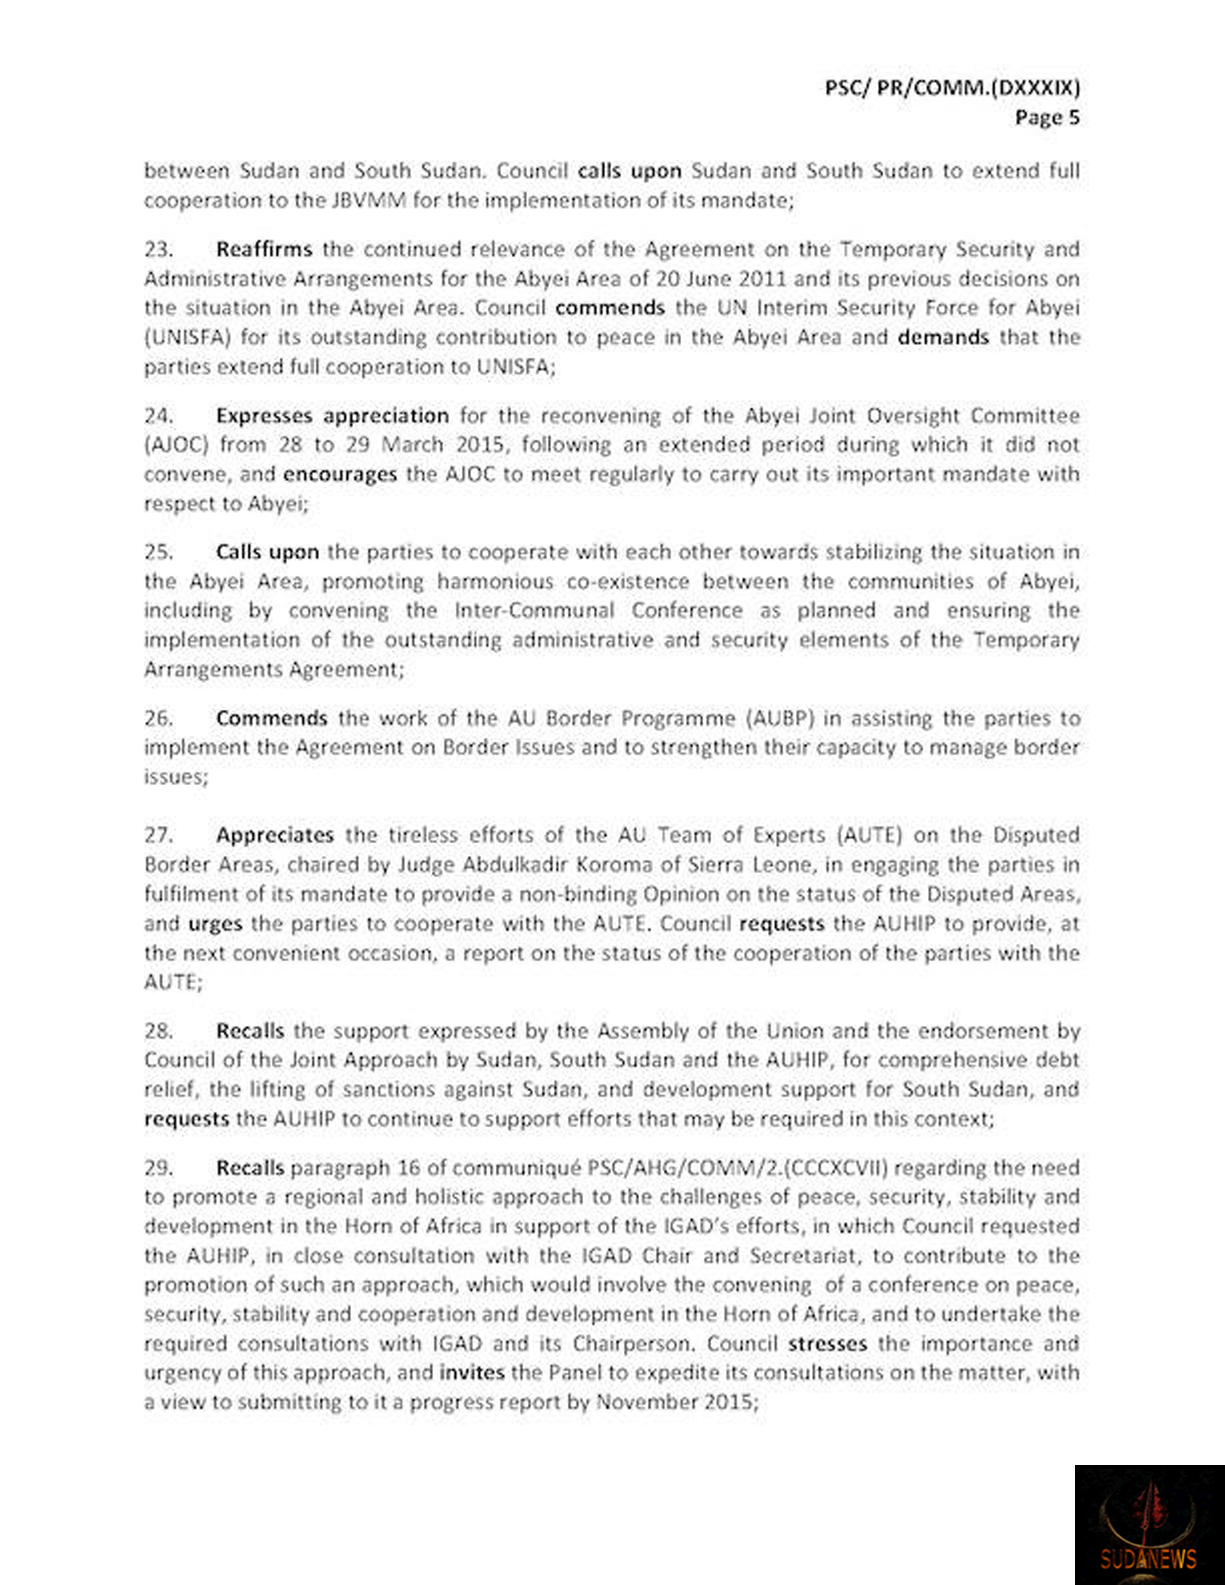 Auhip meeting page 5